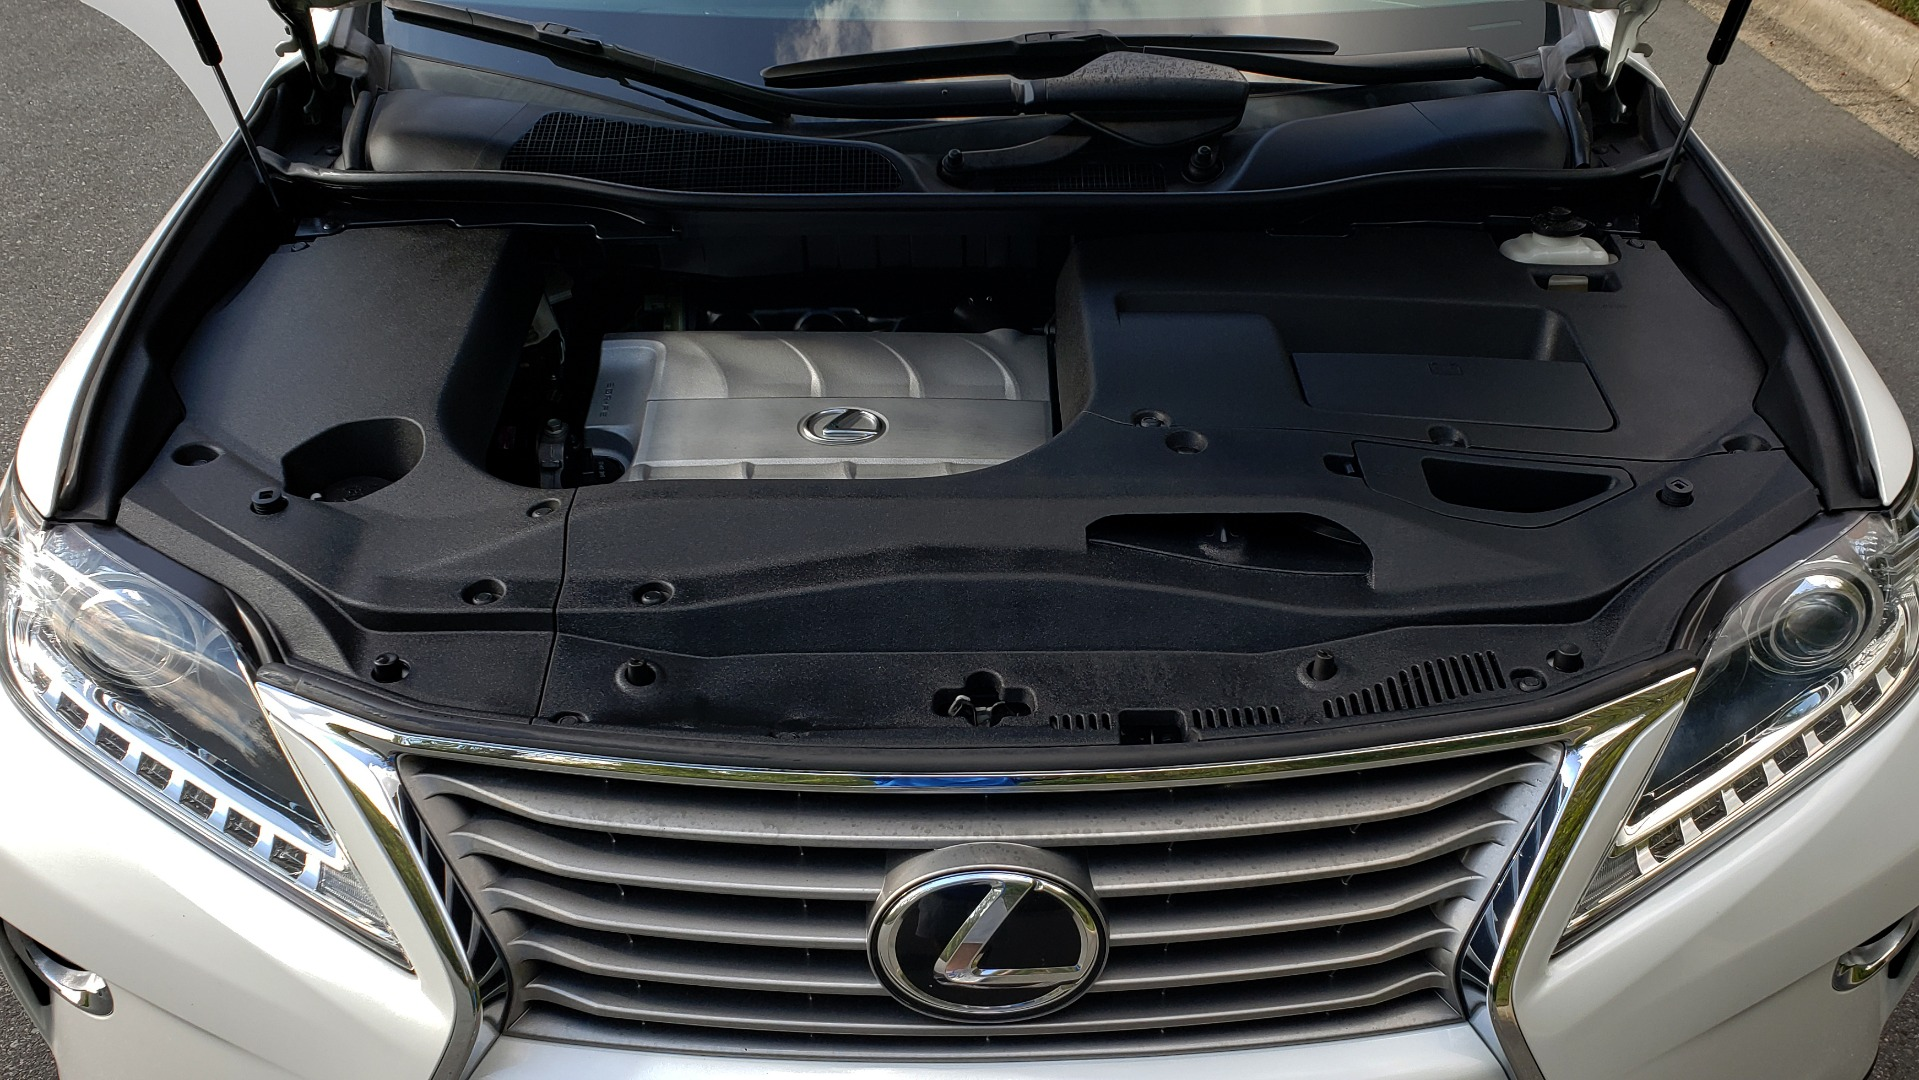 Used 2015 Lexus RX 350 PREMIUM PKG / COMFORT PKG / NAV / SUNROOF / BSM / TOWING for sale Sold at Formula Imports in Charlotte NC 28227 11